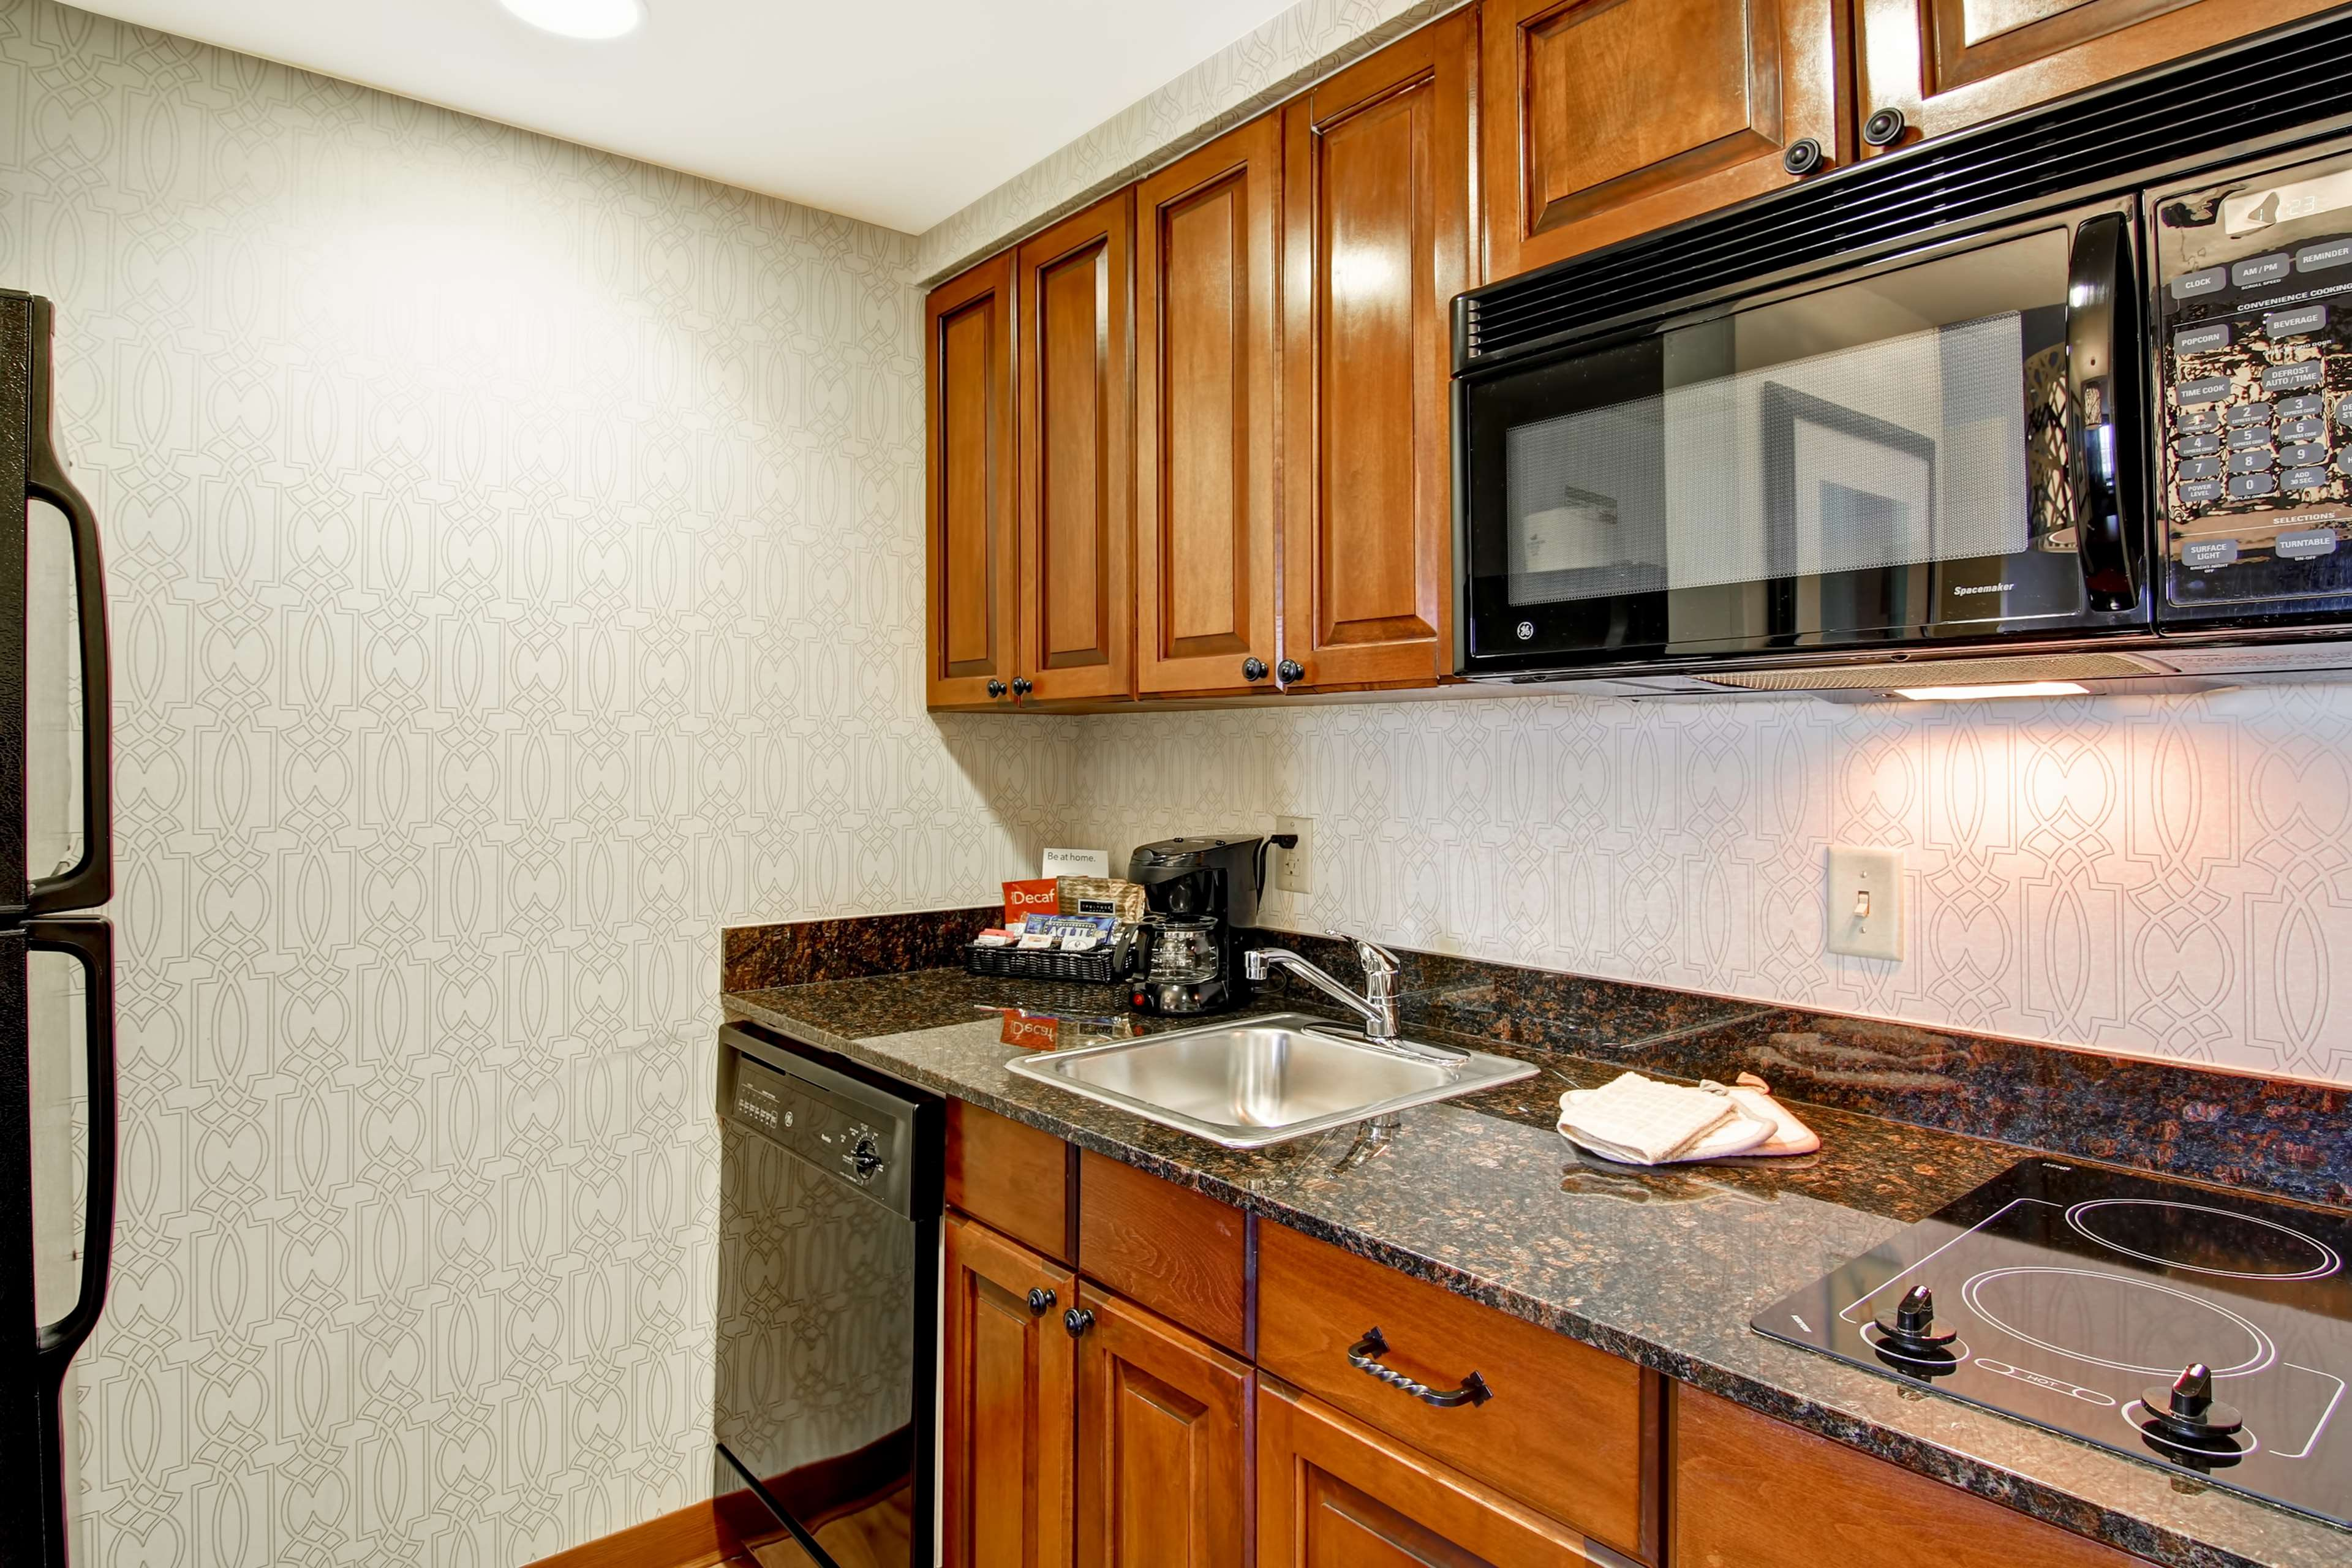 Homewood Suites by Hilton Bentonville-Rogers image 22